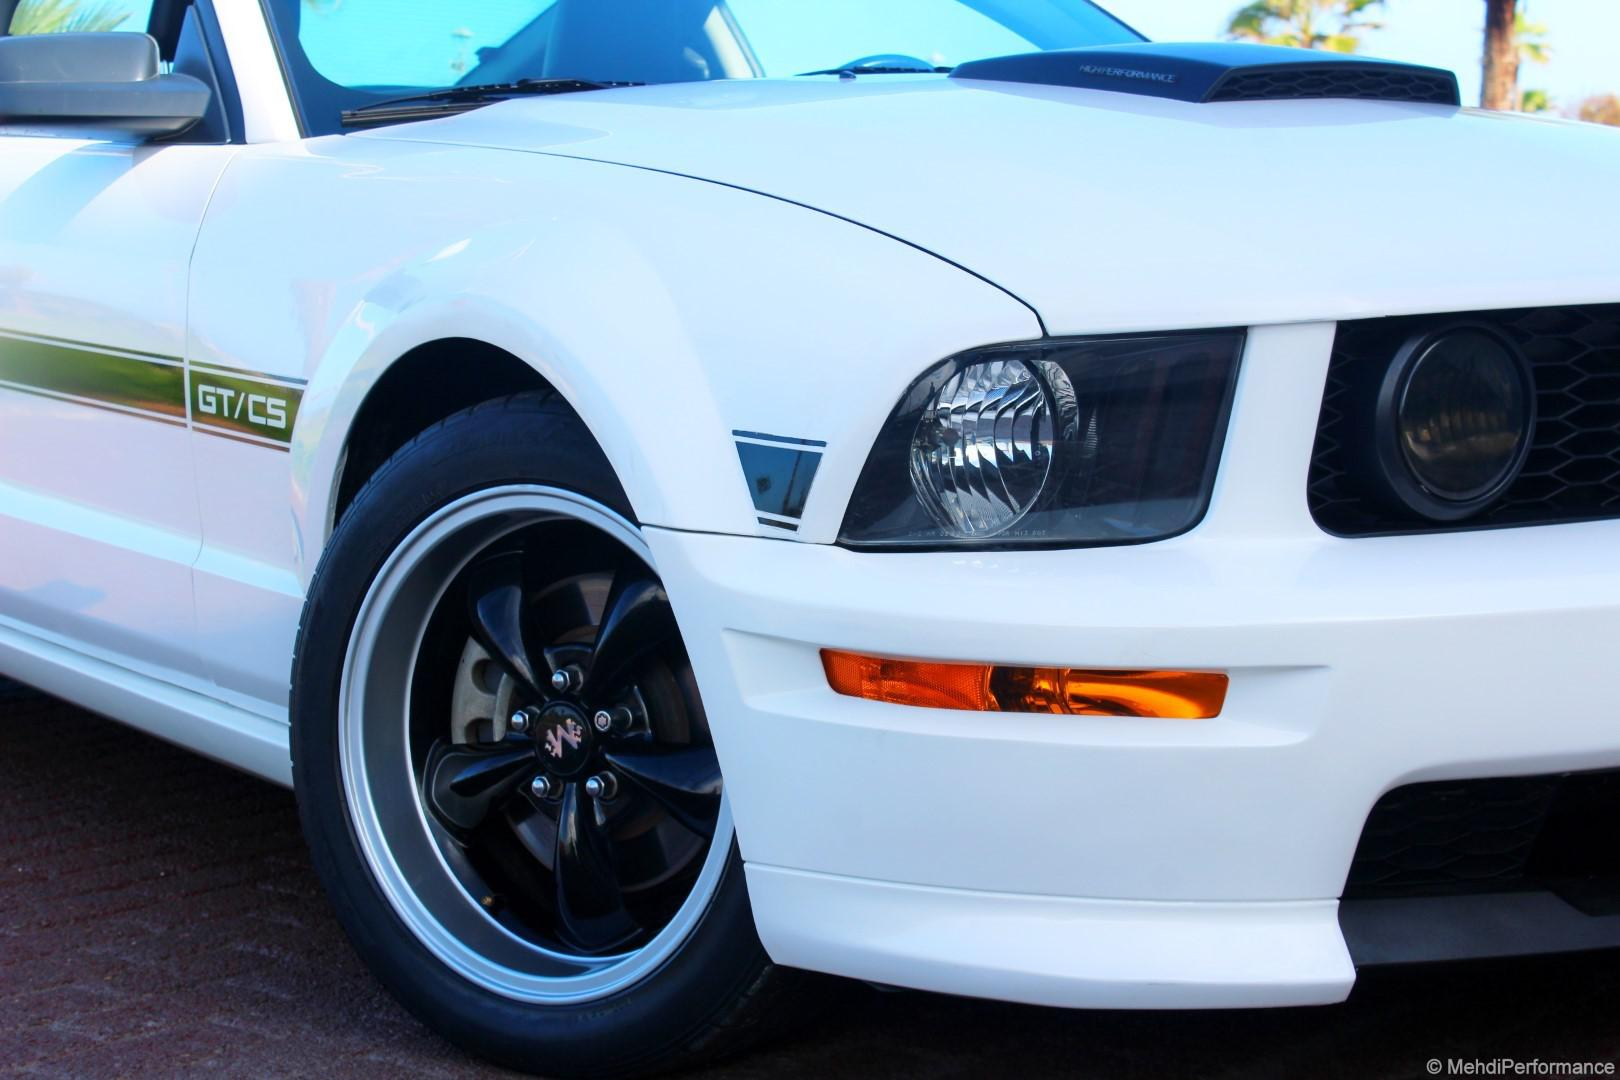 serie-speciale-au-maroc-ford-mustang-gt-v8-4-6l-california-special-manuelle-458-17.jpg